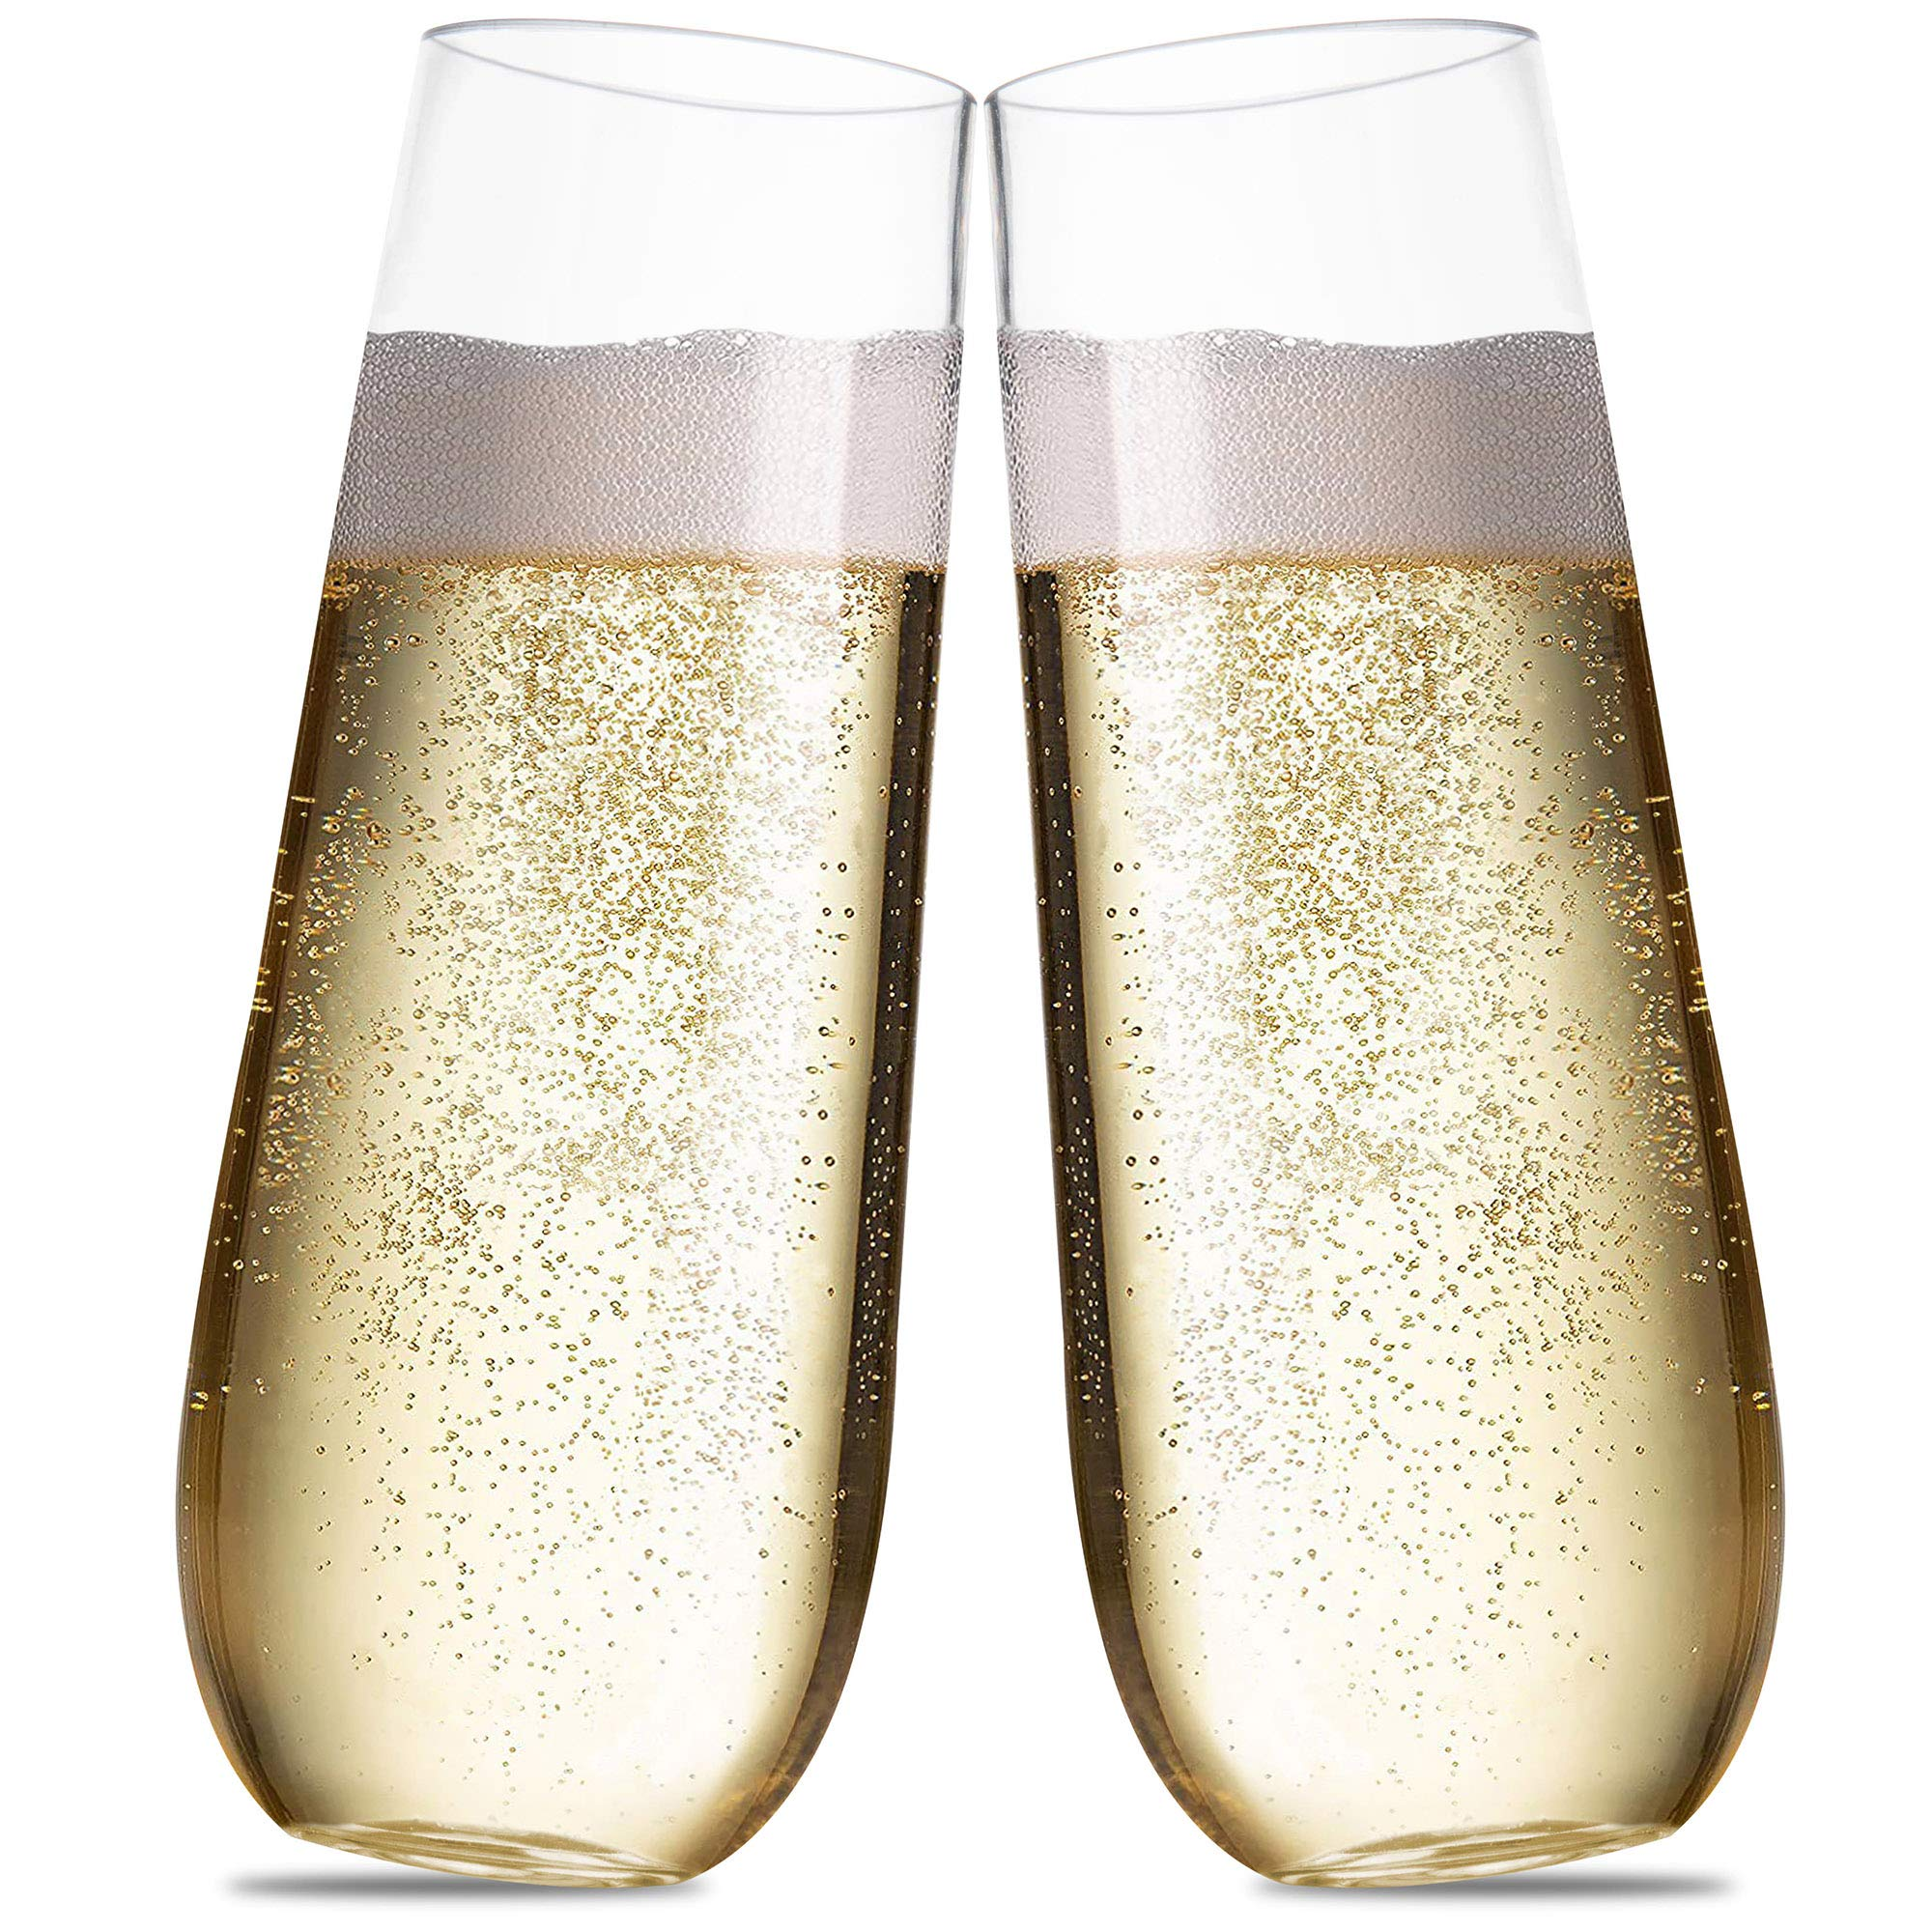 Plastic Champagne Flutes For Parties - 9 oz (Set of 30) - Disposable Stemless Champagne Glasses For A Mimosa Bar And Wedding Toasting. Unbreakable Stemware Cups Clear Like Glass For Cocktail, Wine